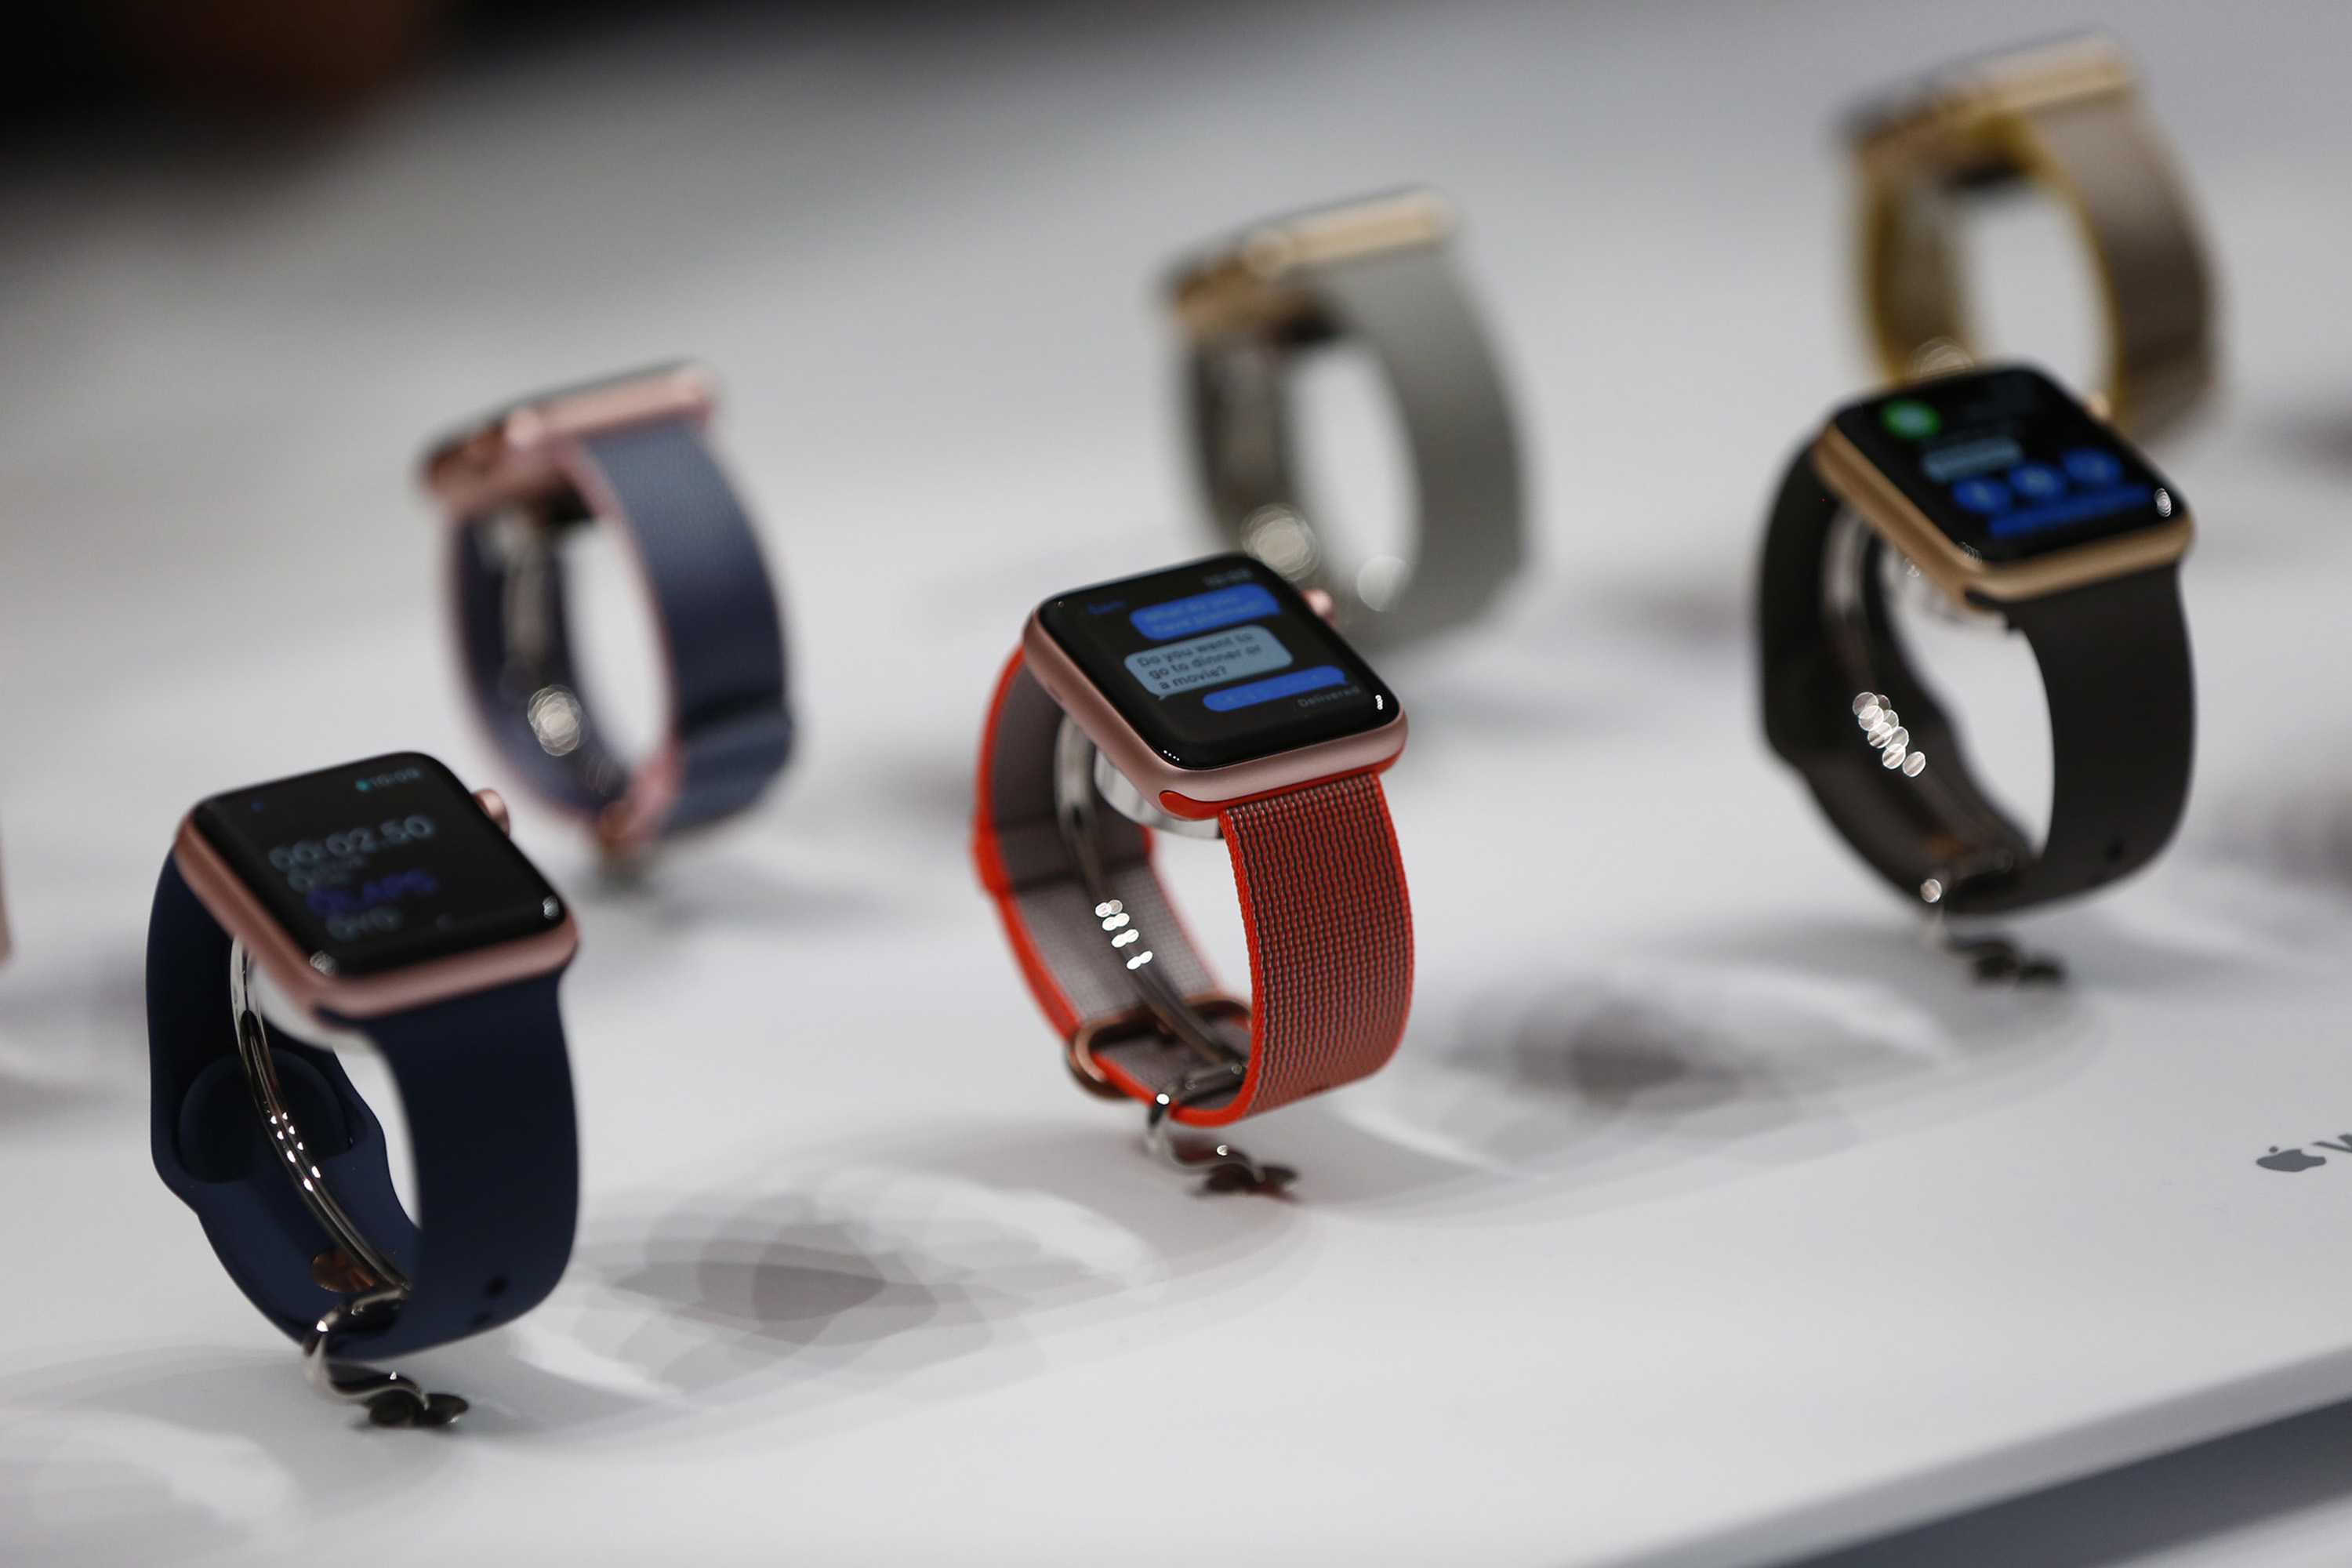 Apple Watch Series 2 are on display during the product launch of the iPhone 7 at the Bill Graham Civic Auditorium in San Francisco on Wednesday, Sept. 7, 2016. (Gary Reyes/Bay Area News Group/TNS)